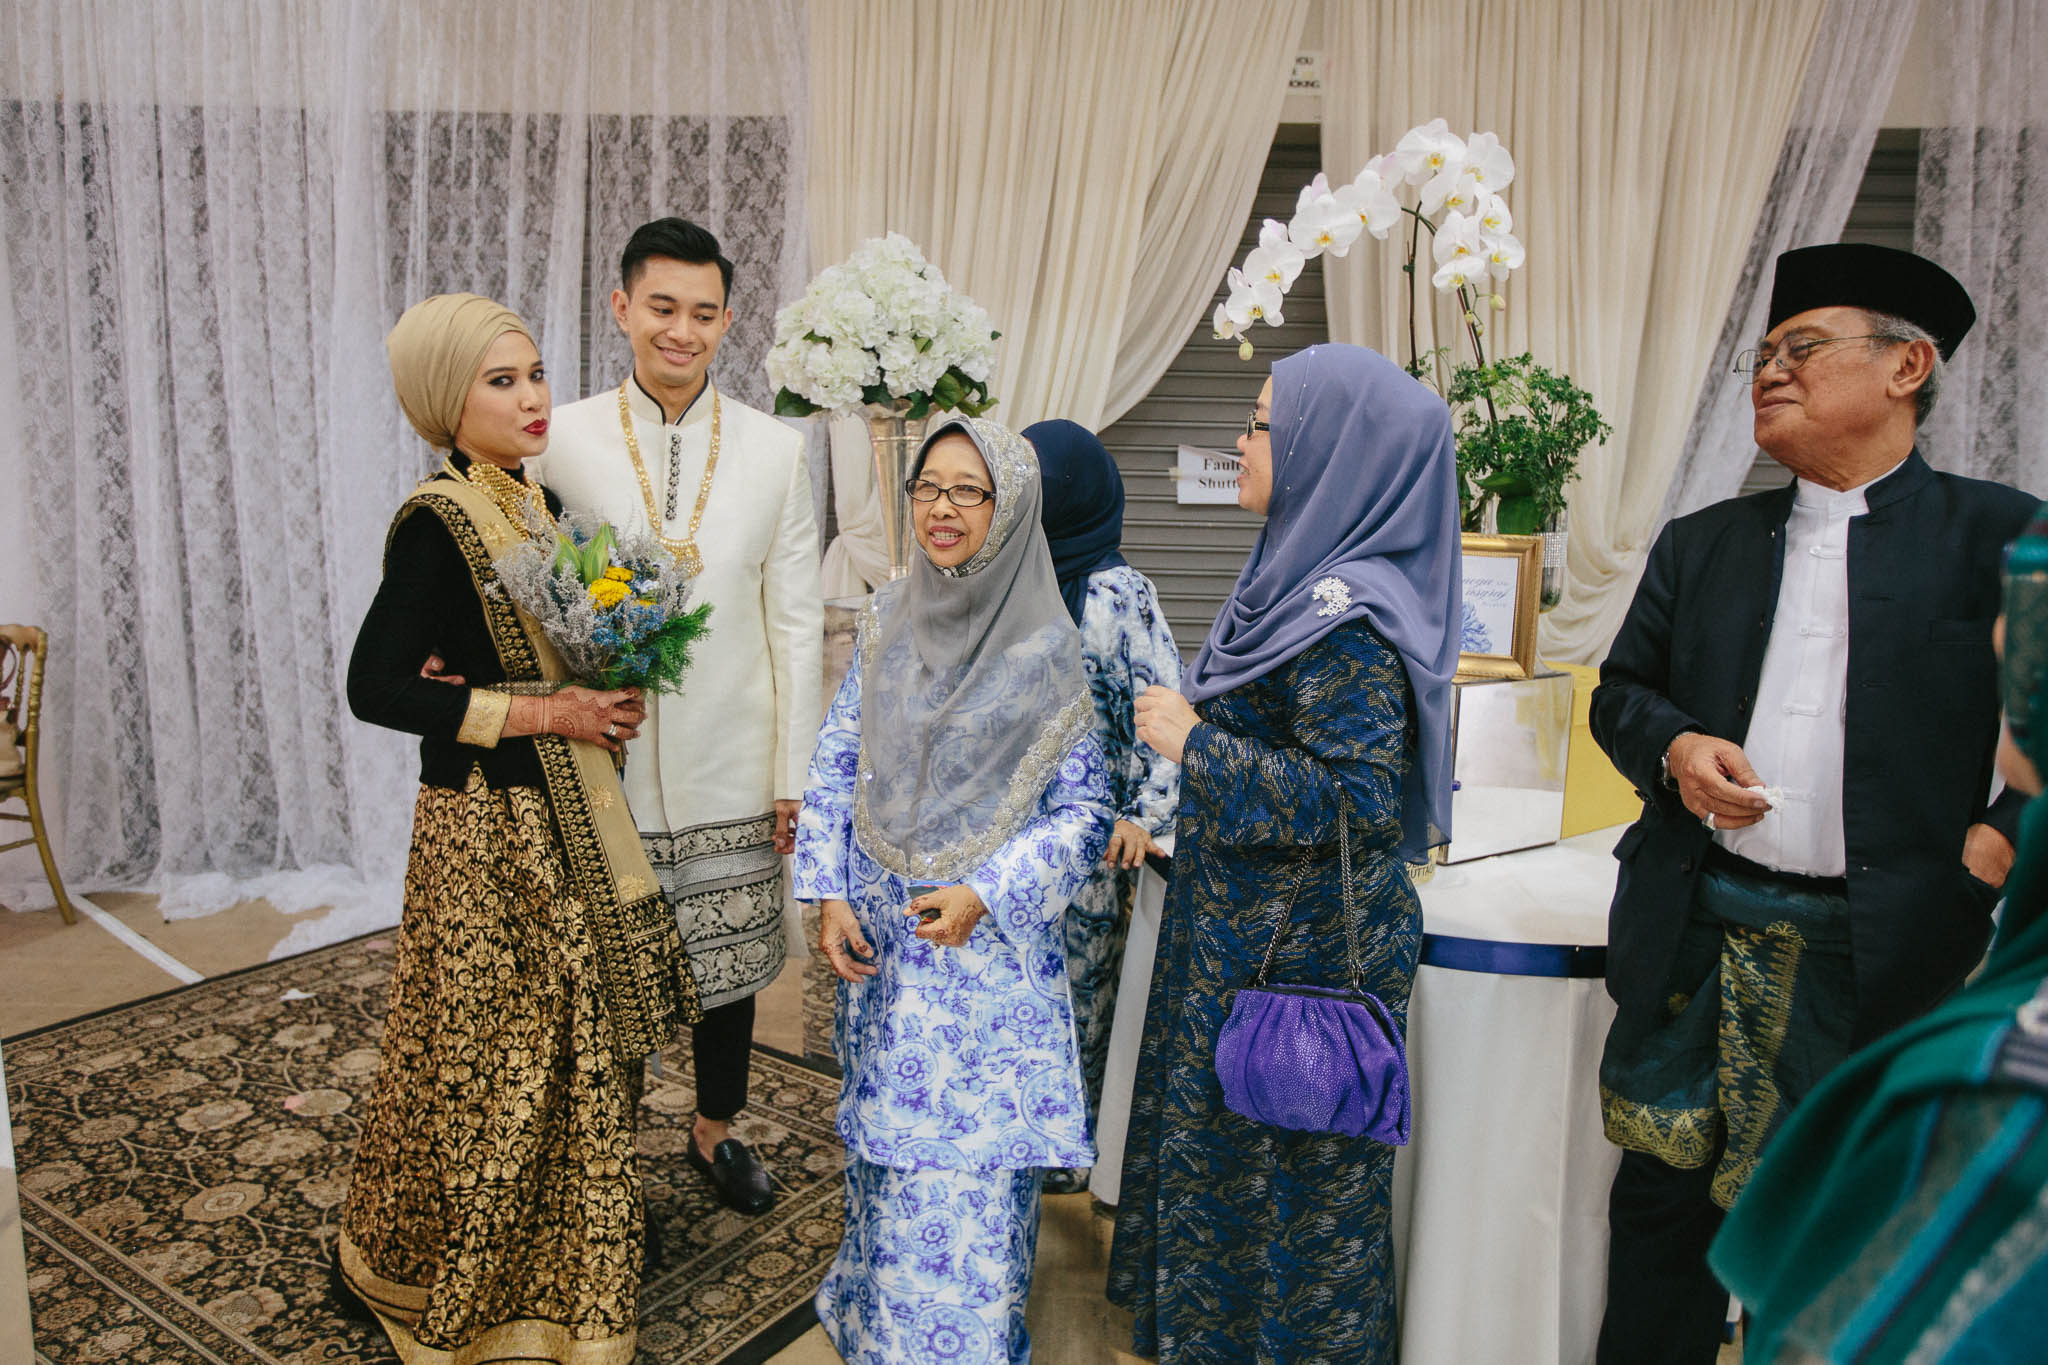 singapore-wedding-photographer-mega-asyraf-75.jpg